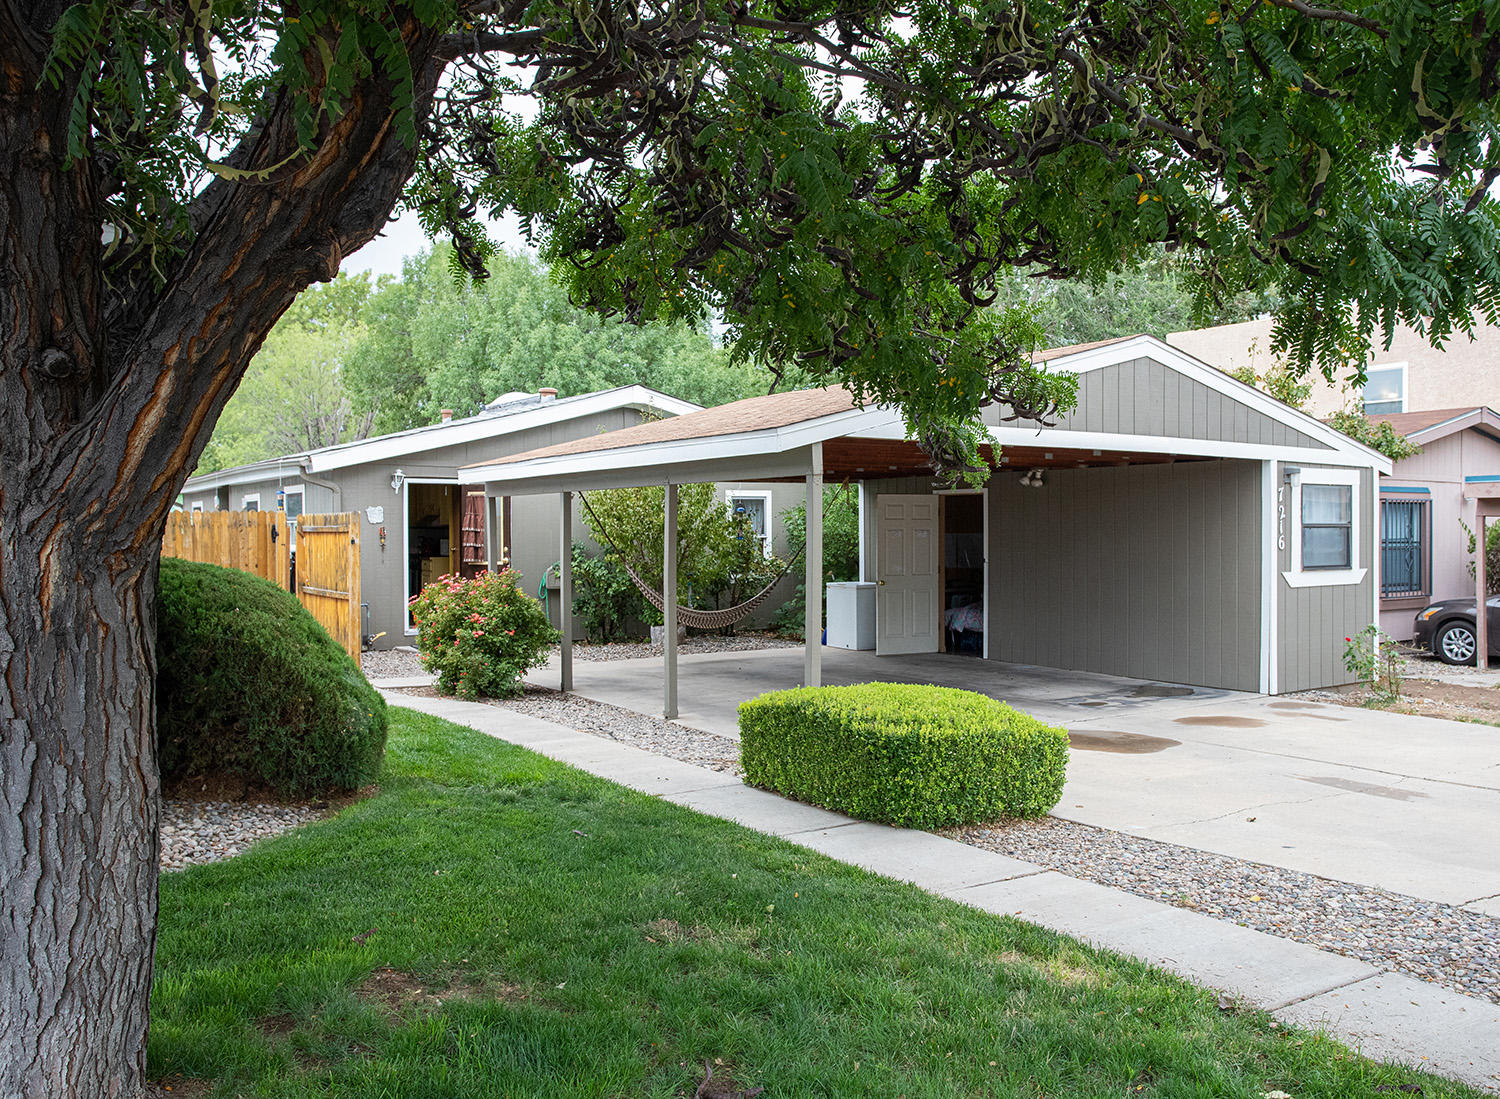 Affordability in the NE Heights! Charming mobile home in a great community and awesome location! Hurry before this one is gone!HOA covers water, landscaping, and common areas!